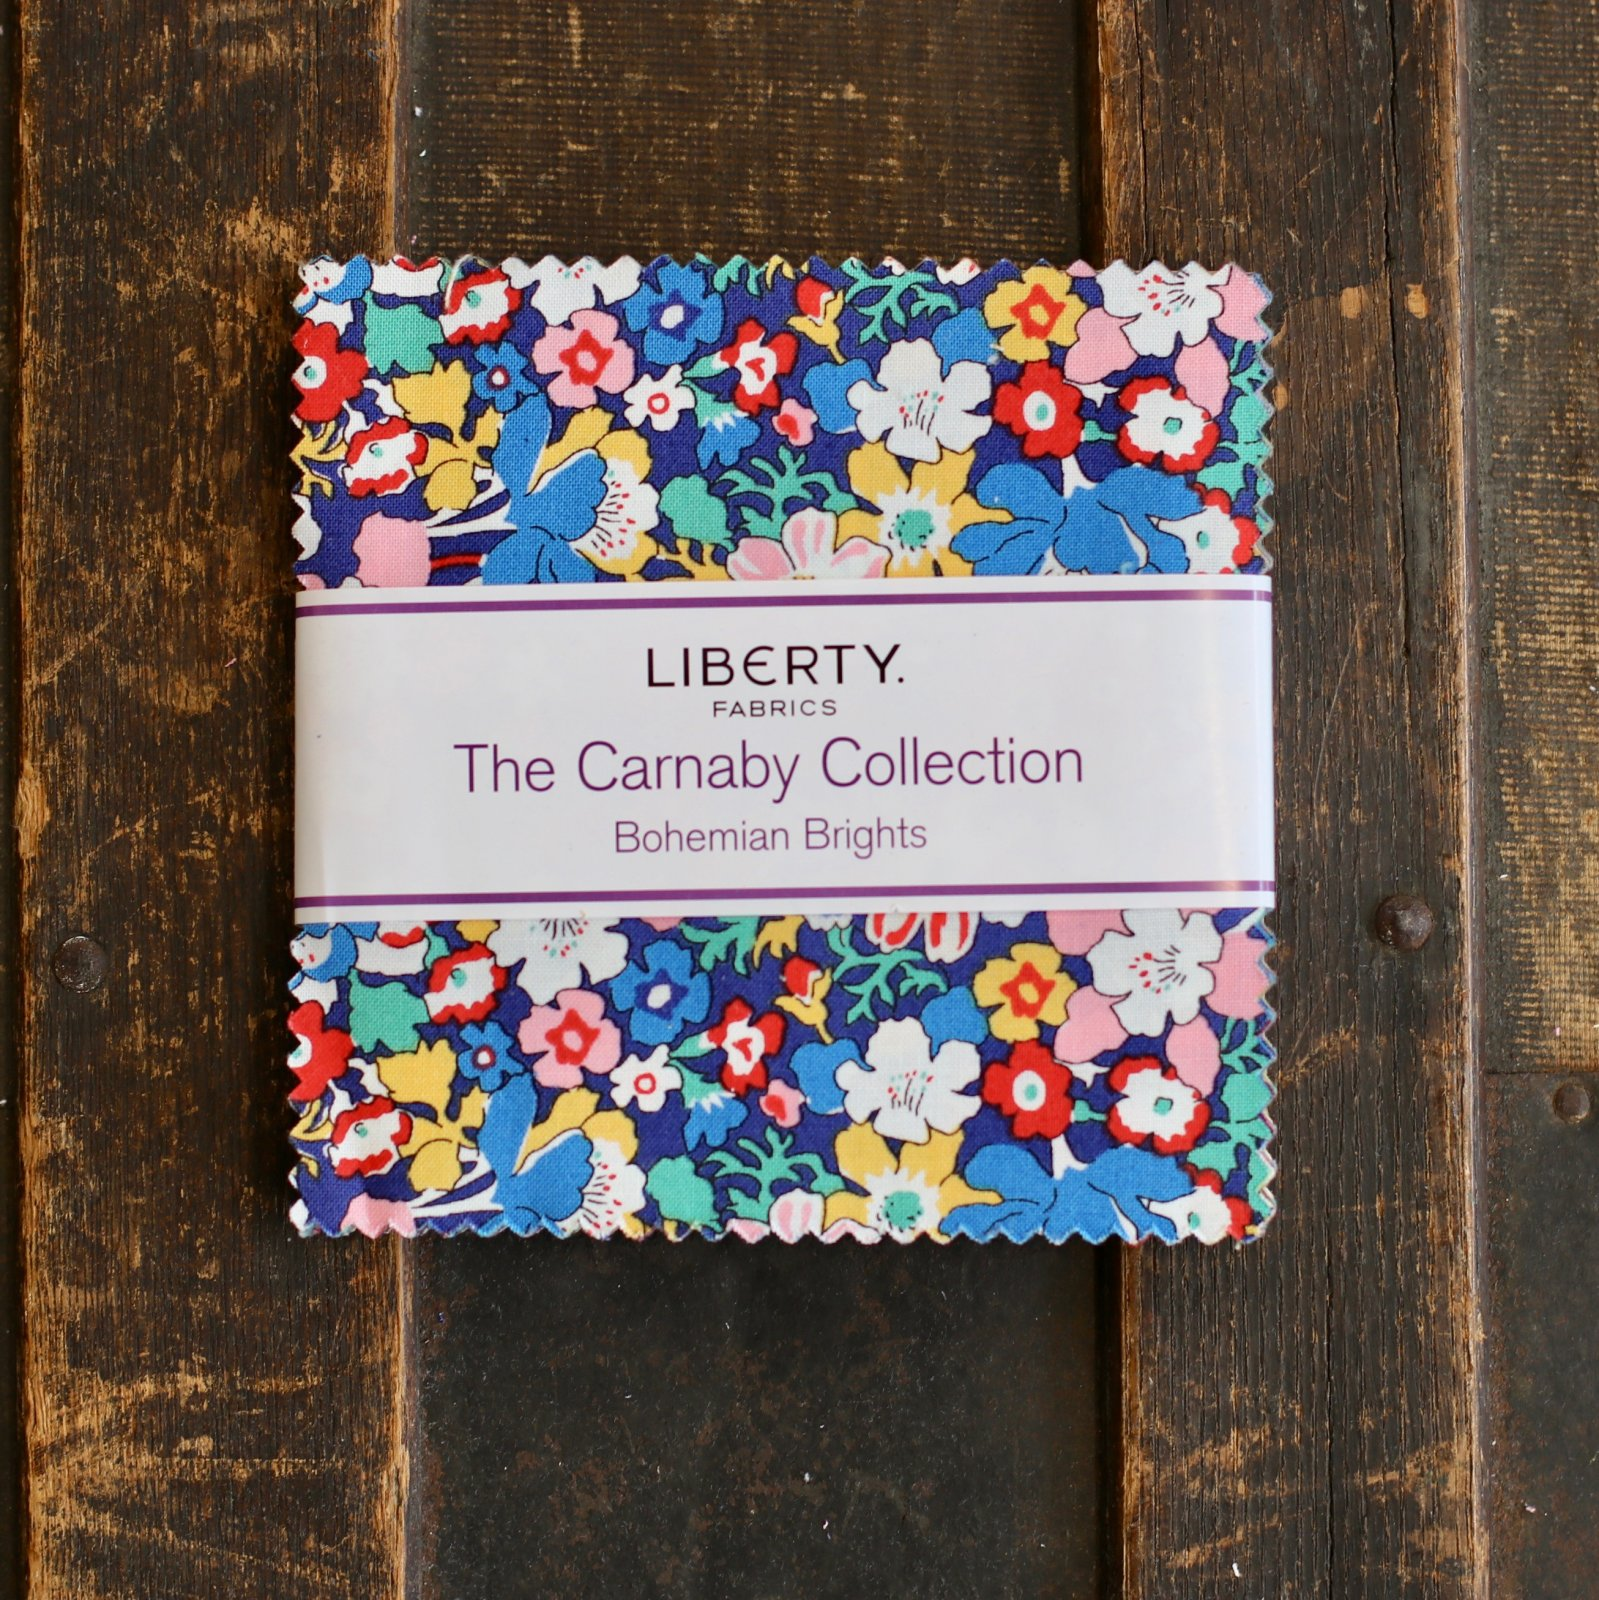 Liberty Fabrics The Carnaby Collection - Bohemian Brights 5 Stacker